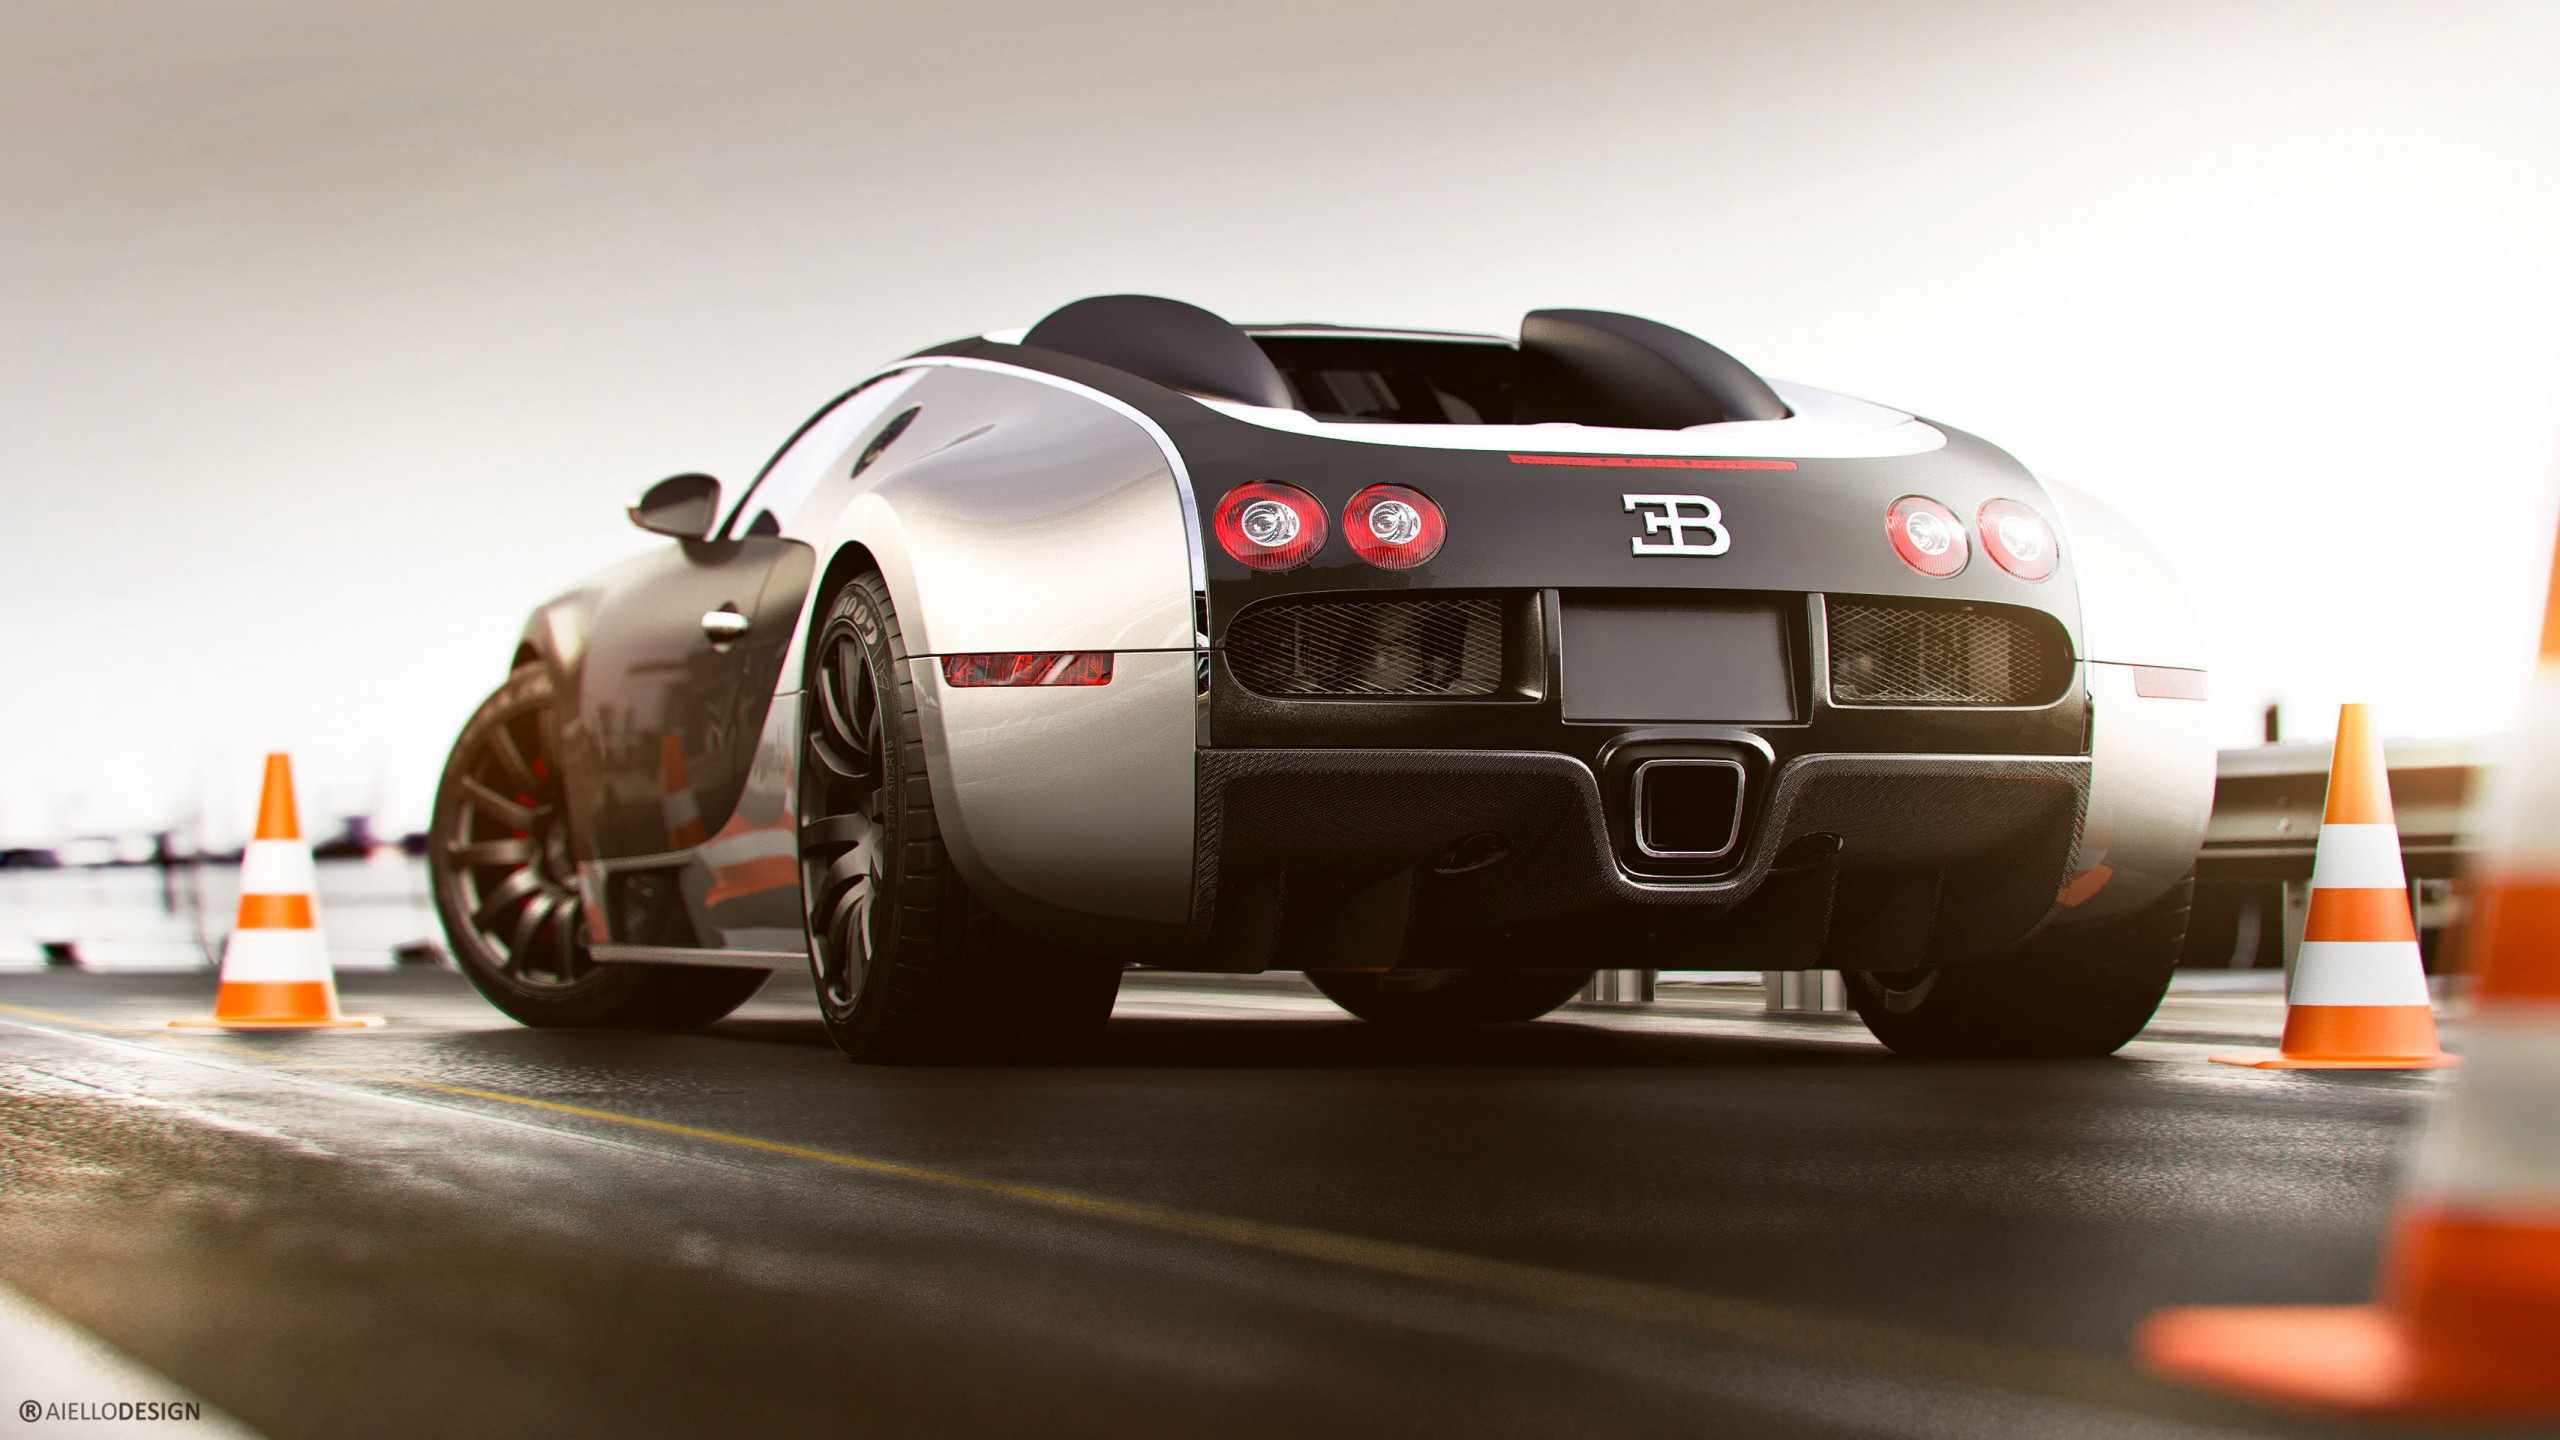 Bentley Supercar Rear View Wallpaper Hd Car Wallpapers